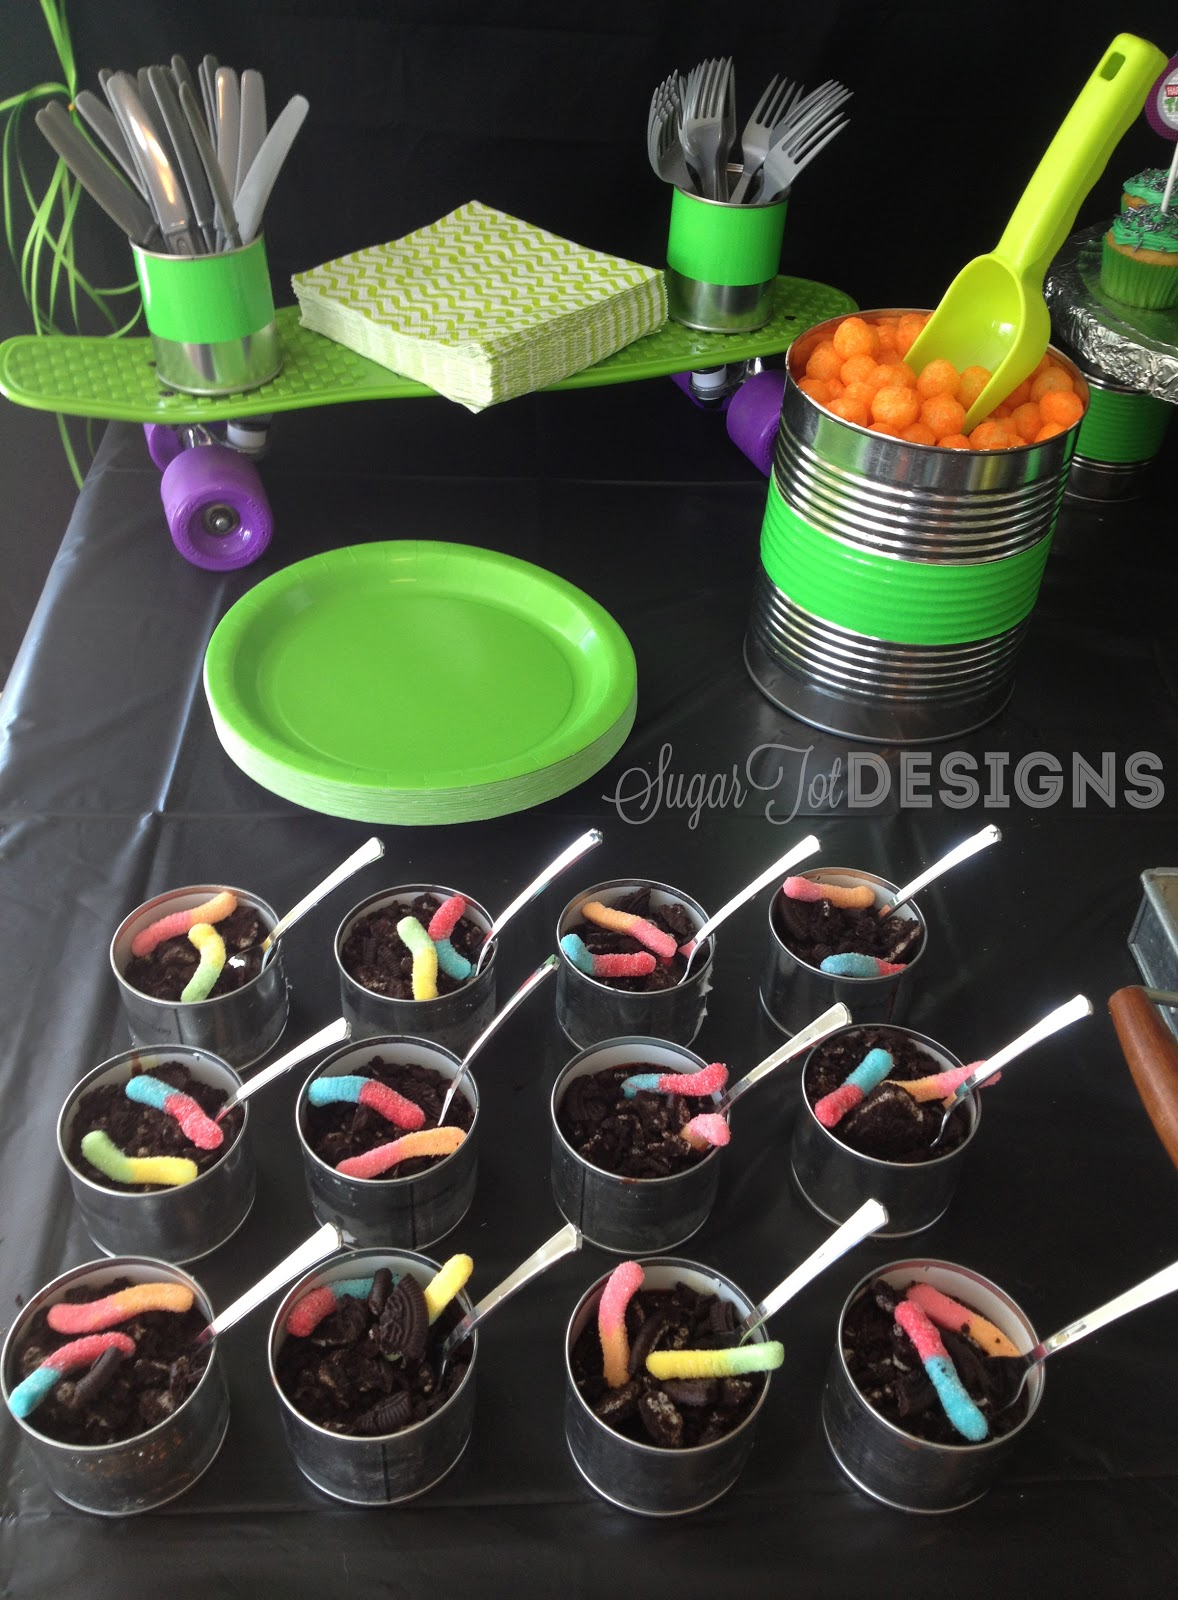 Sugartotdesigns teenage mutant ninja turtle party for Tmnt decorations